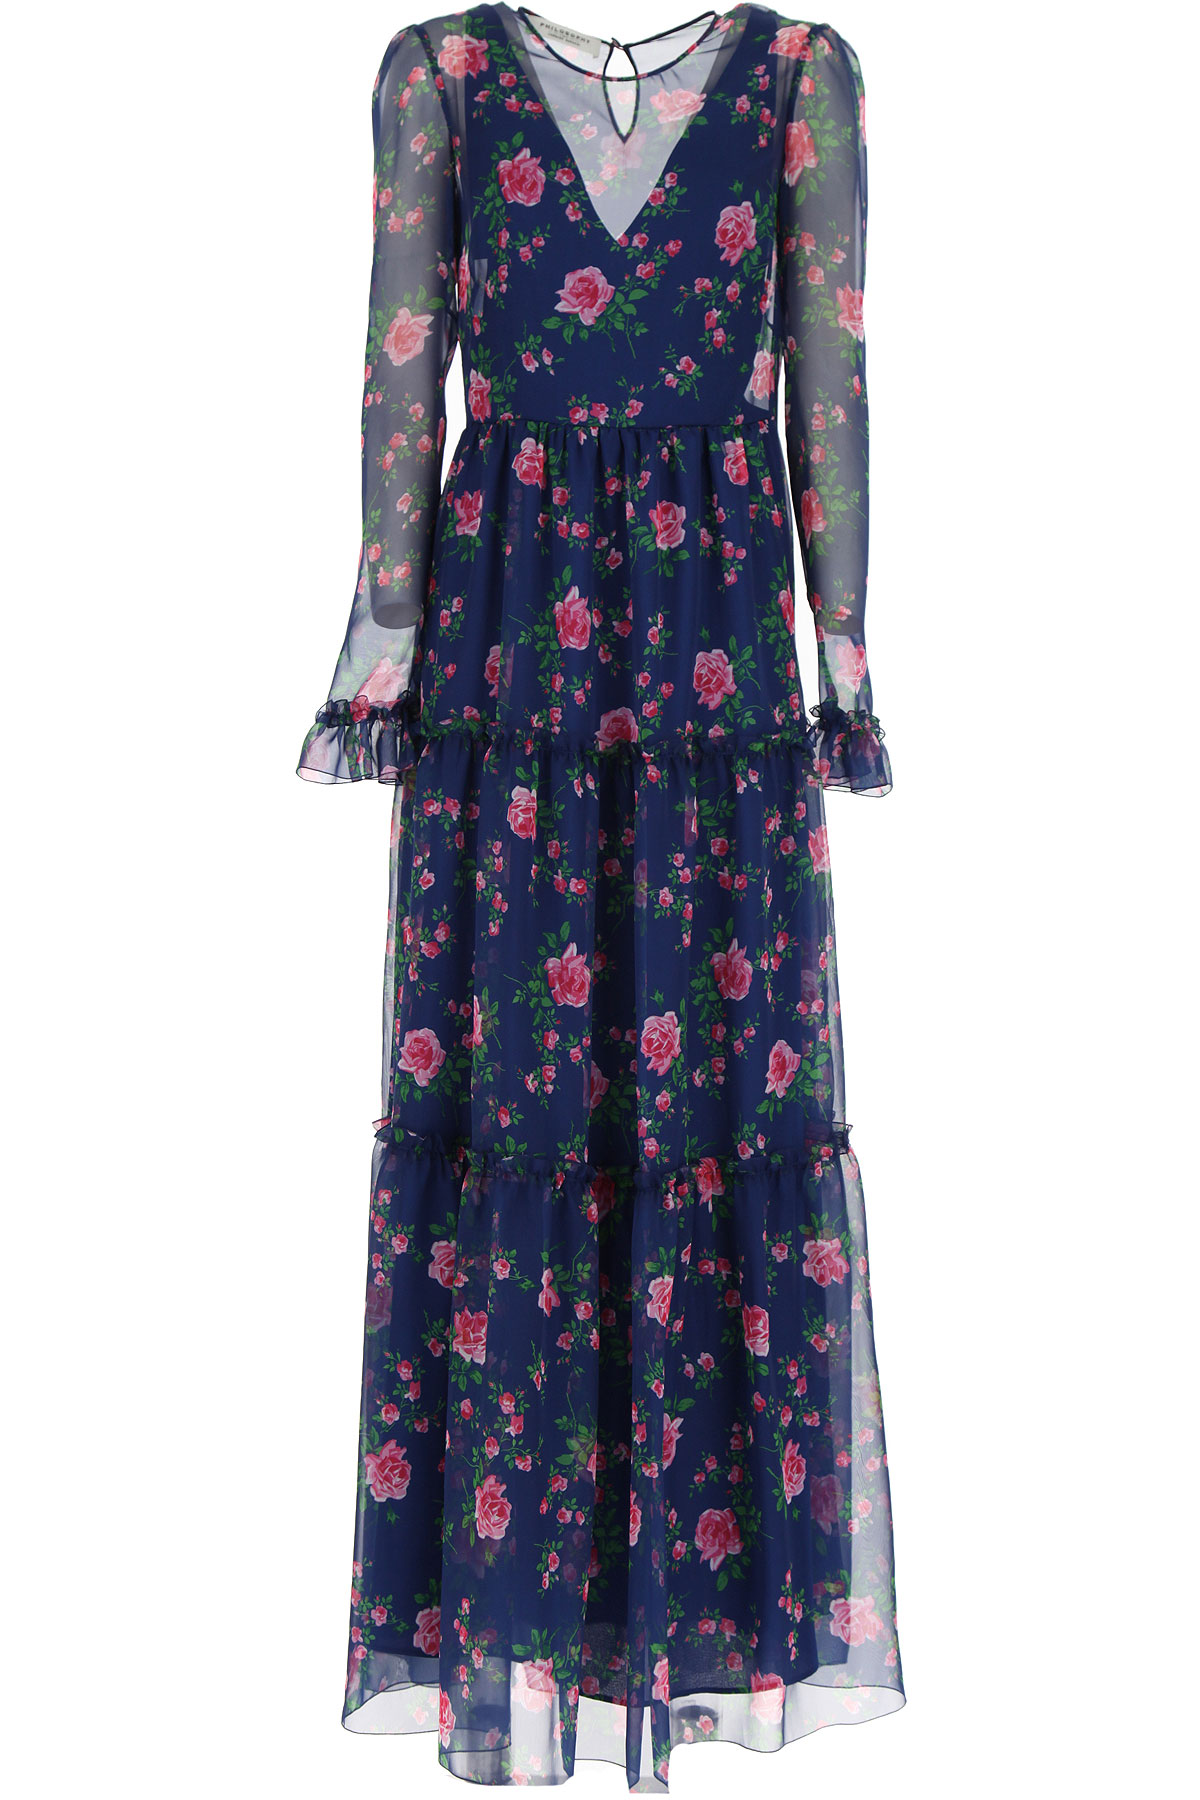 Philosophy di Lorenzo Serafini Dress for Women, Evening Cocktail Party On Sale, Blue, polyester, 2019, 4 6